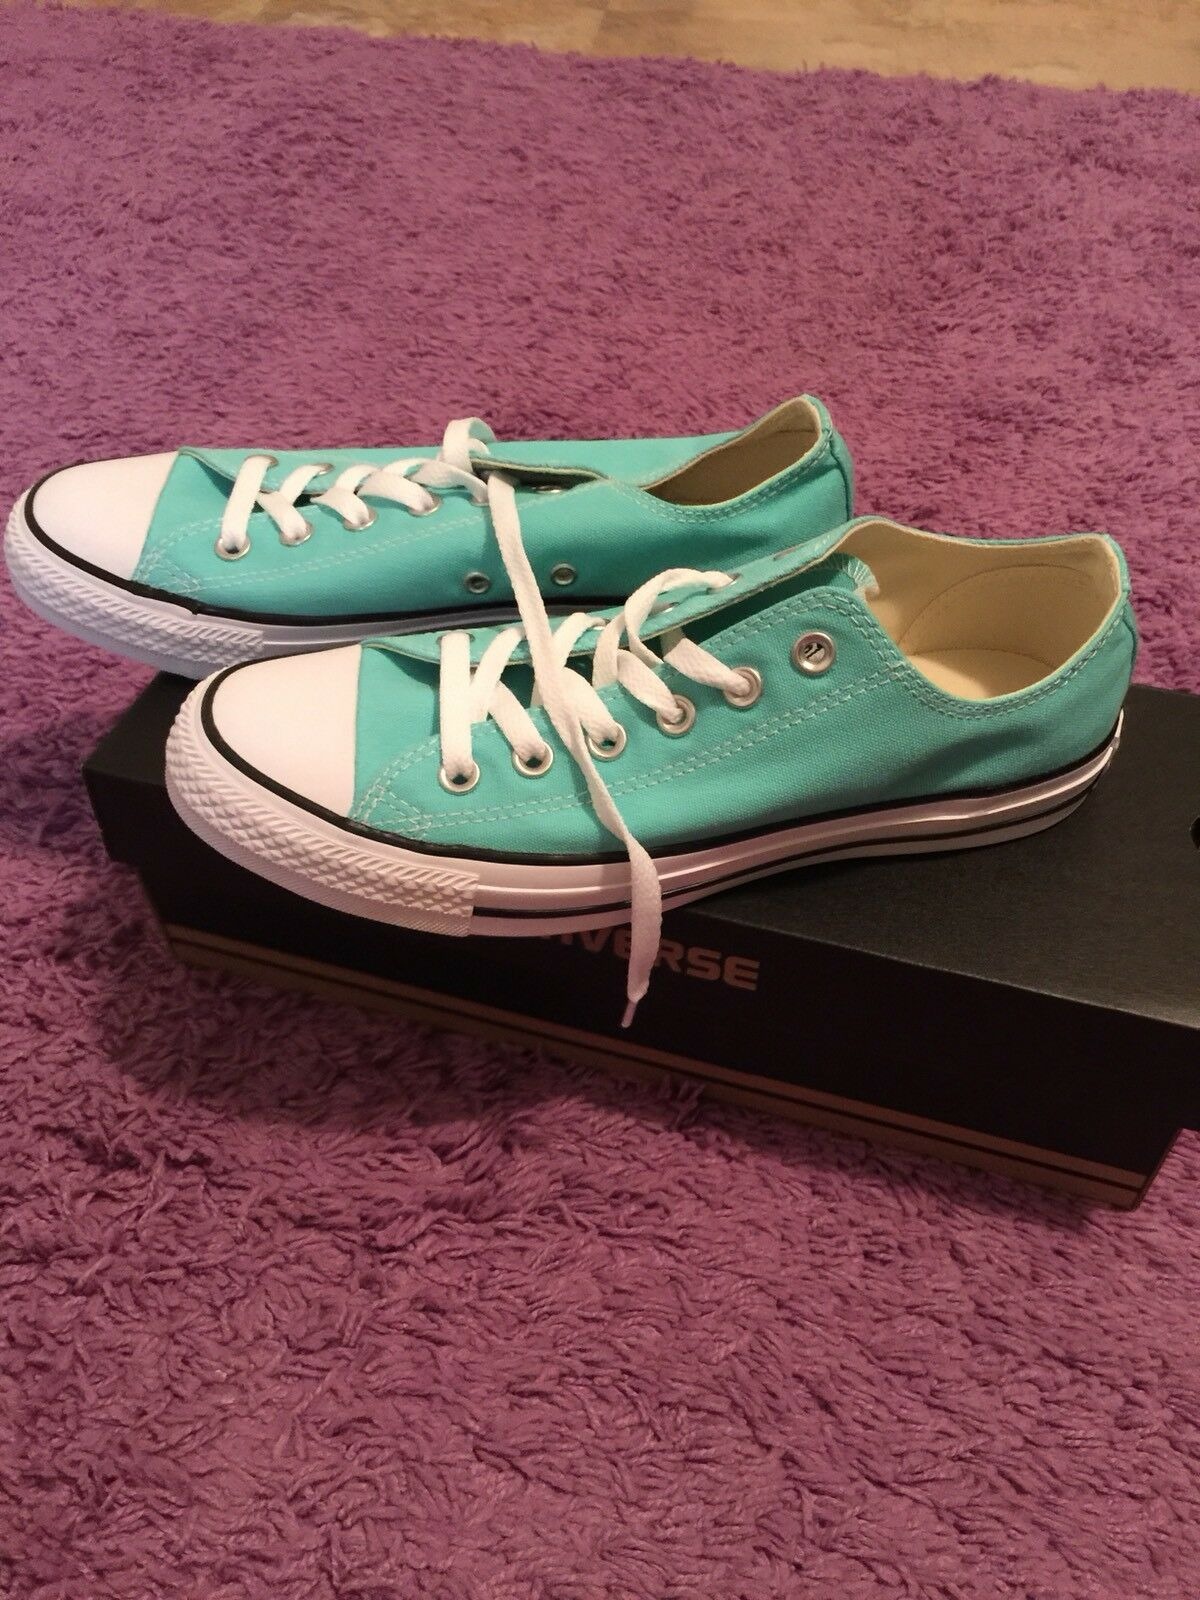 Women's Converse Shoes sz.9 Brand New In Box